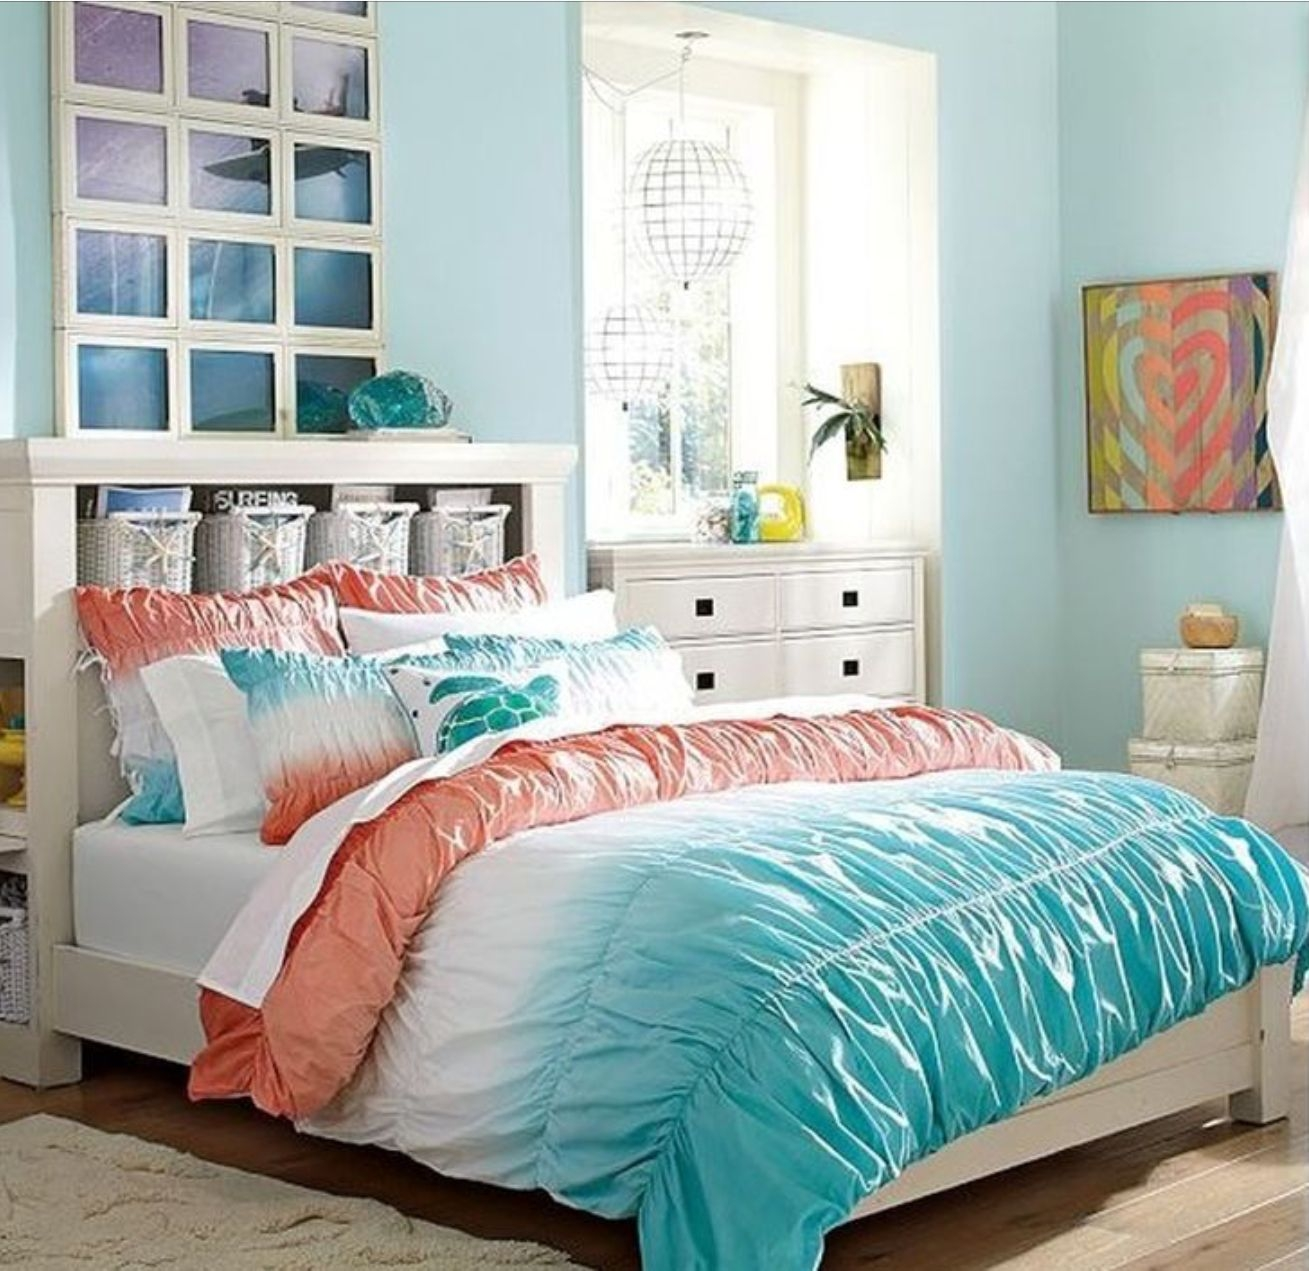 salmon colored bed sheets - Mersn.proforum.co